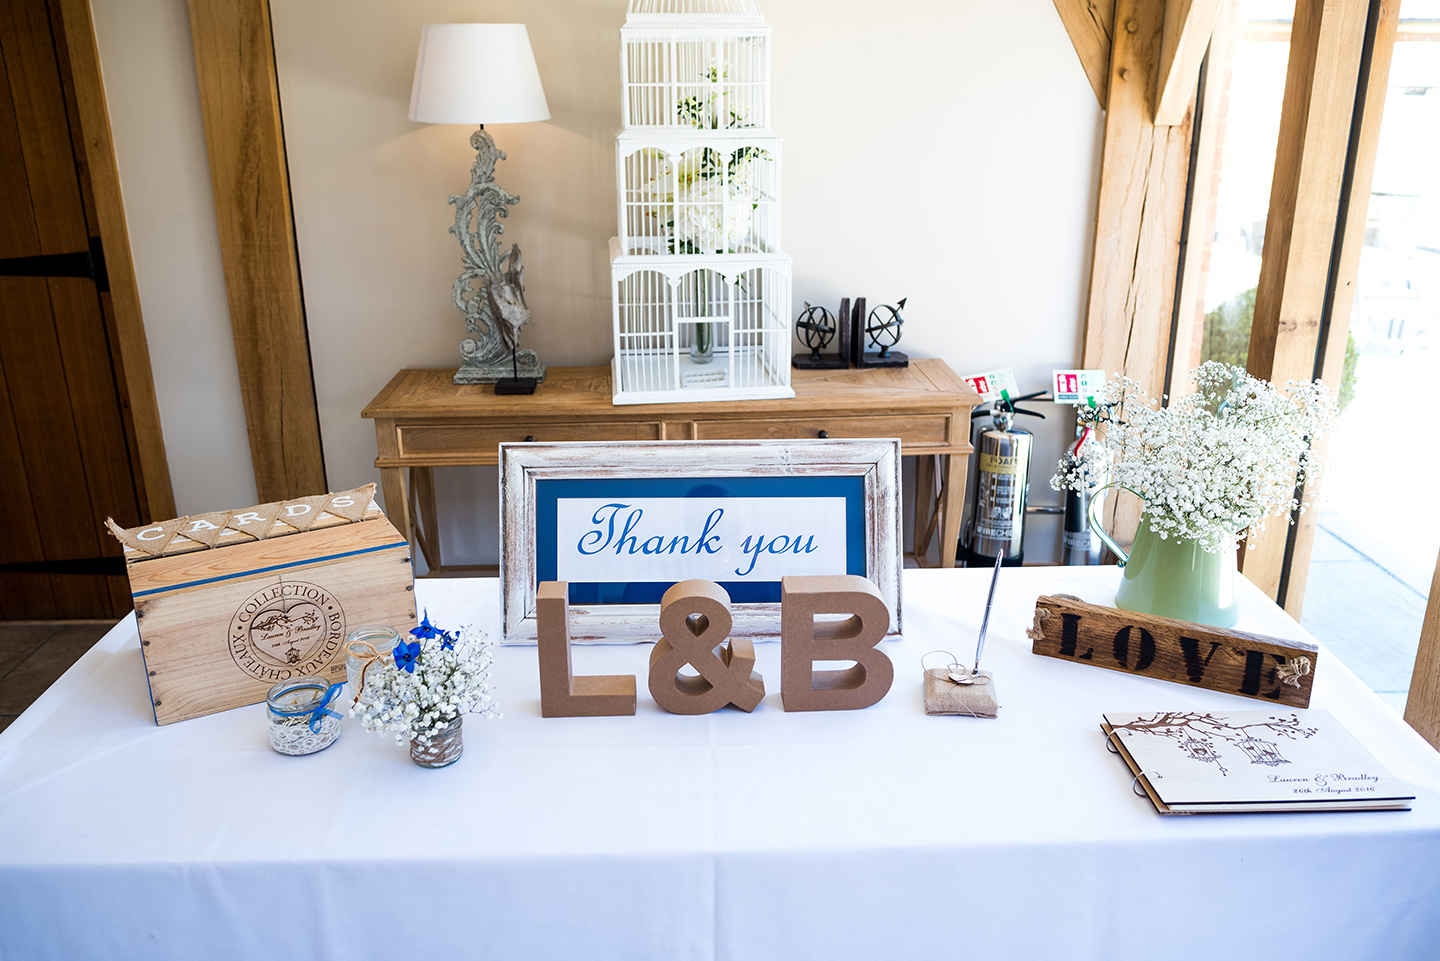 Inside the barn a table was decorated with gypsophila and featured a wedding guest book and card box